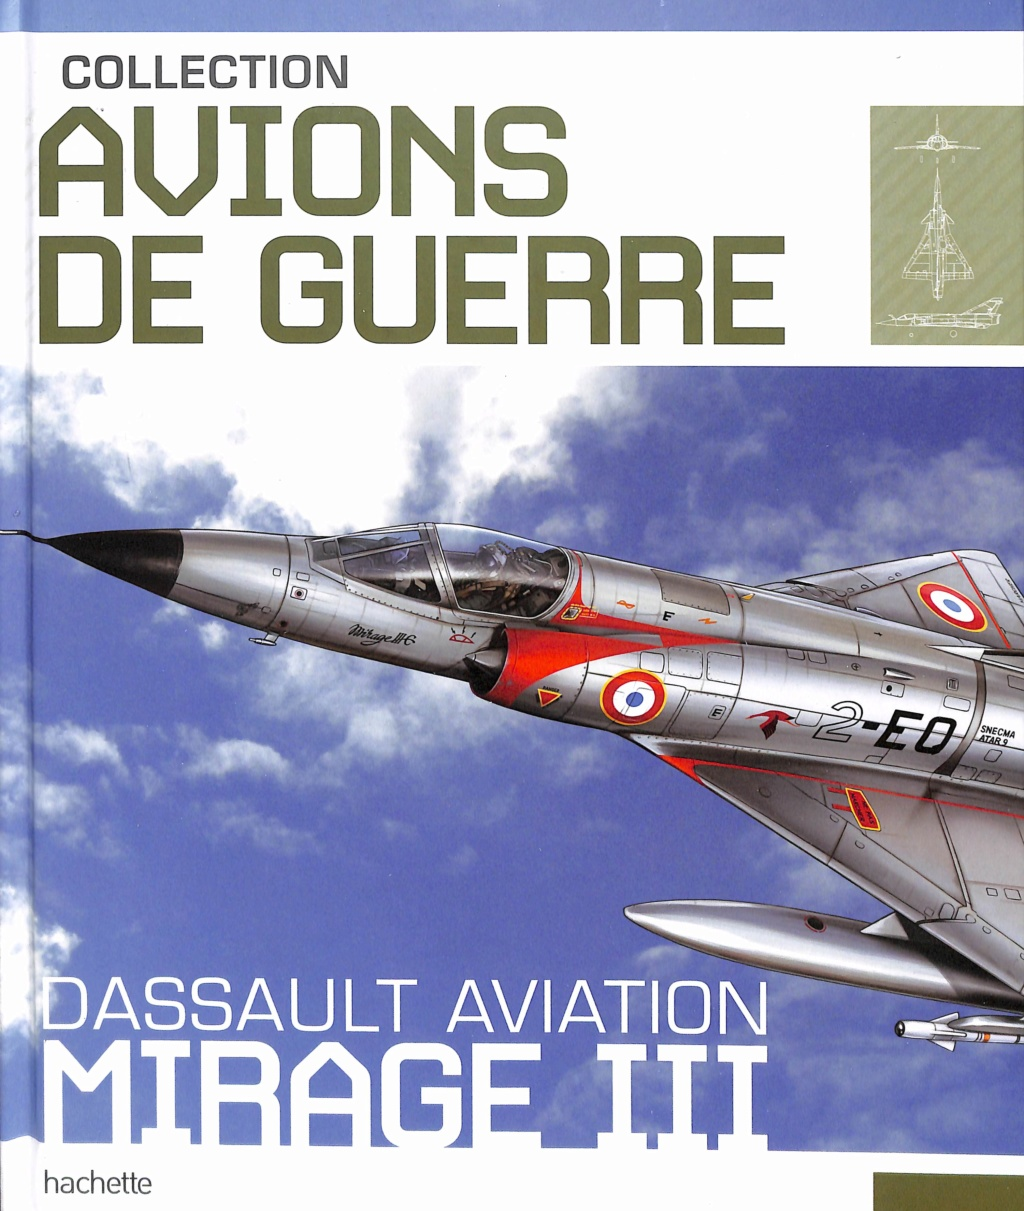 Nouvelle collection en kiosques: Avions de guerre - Page 2 M4263-24